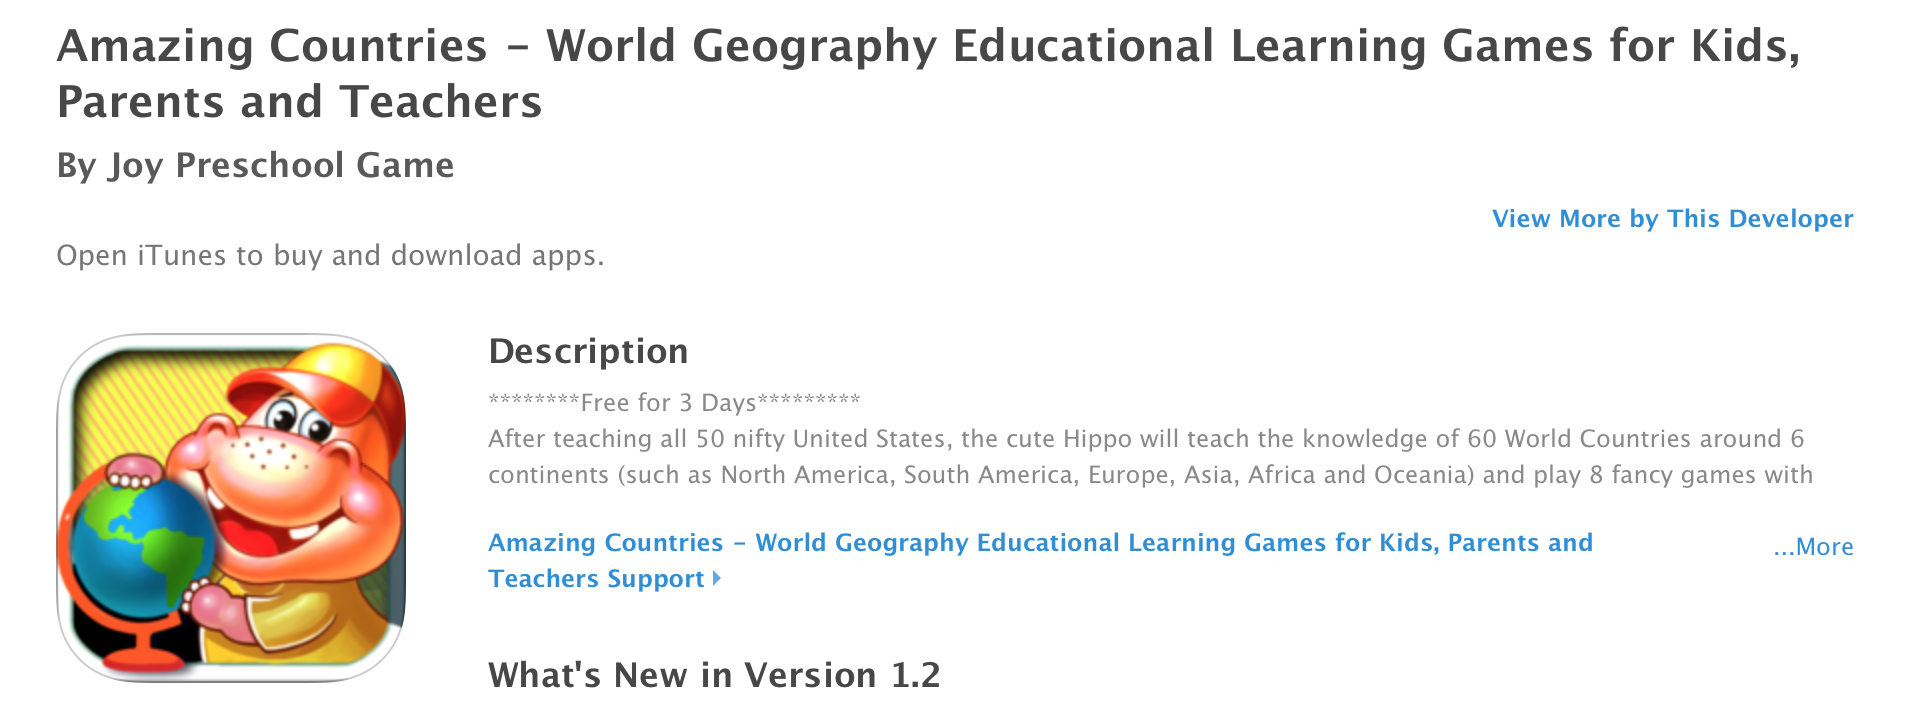 Best Geography Apps and Games for Children - MommyMaleta